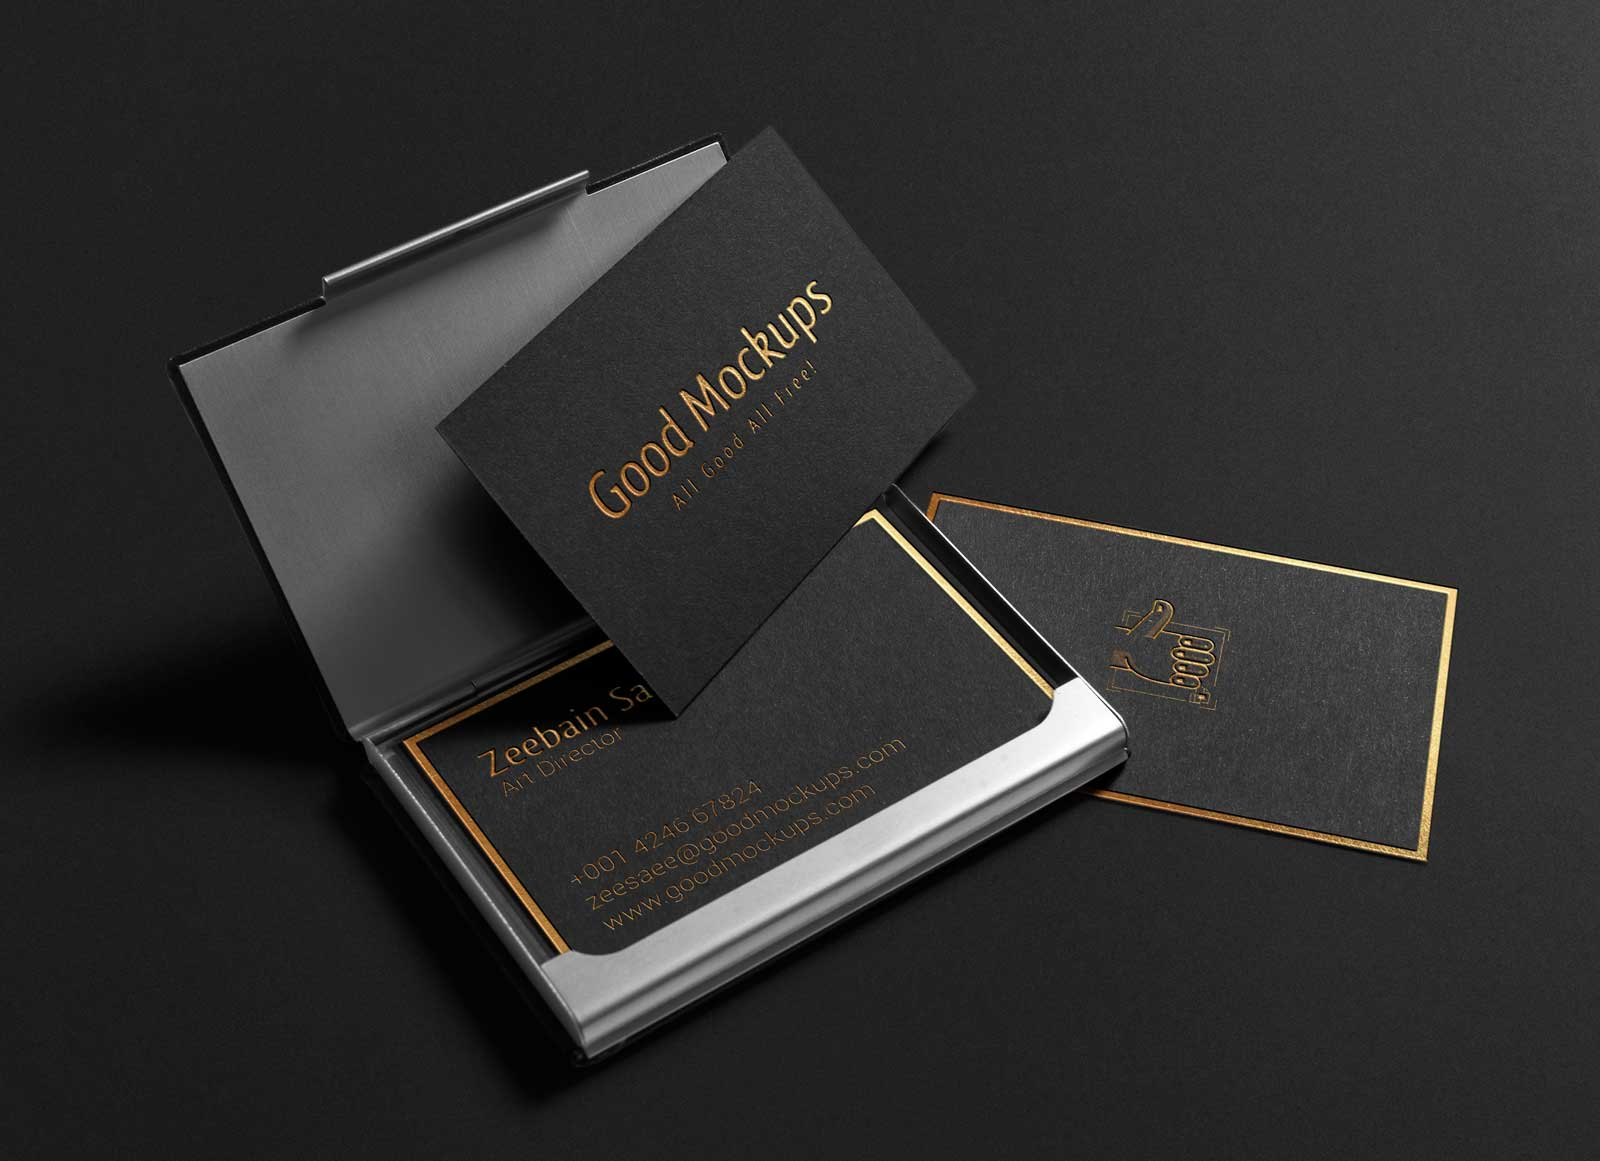 Free black with gold foil lettering business card mockup psd good free black business card mockup psd reheart Images